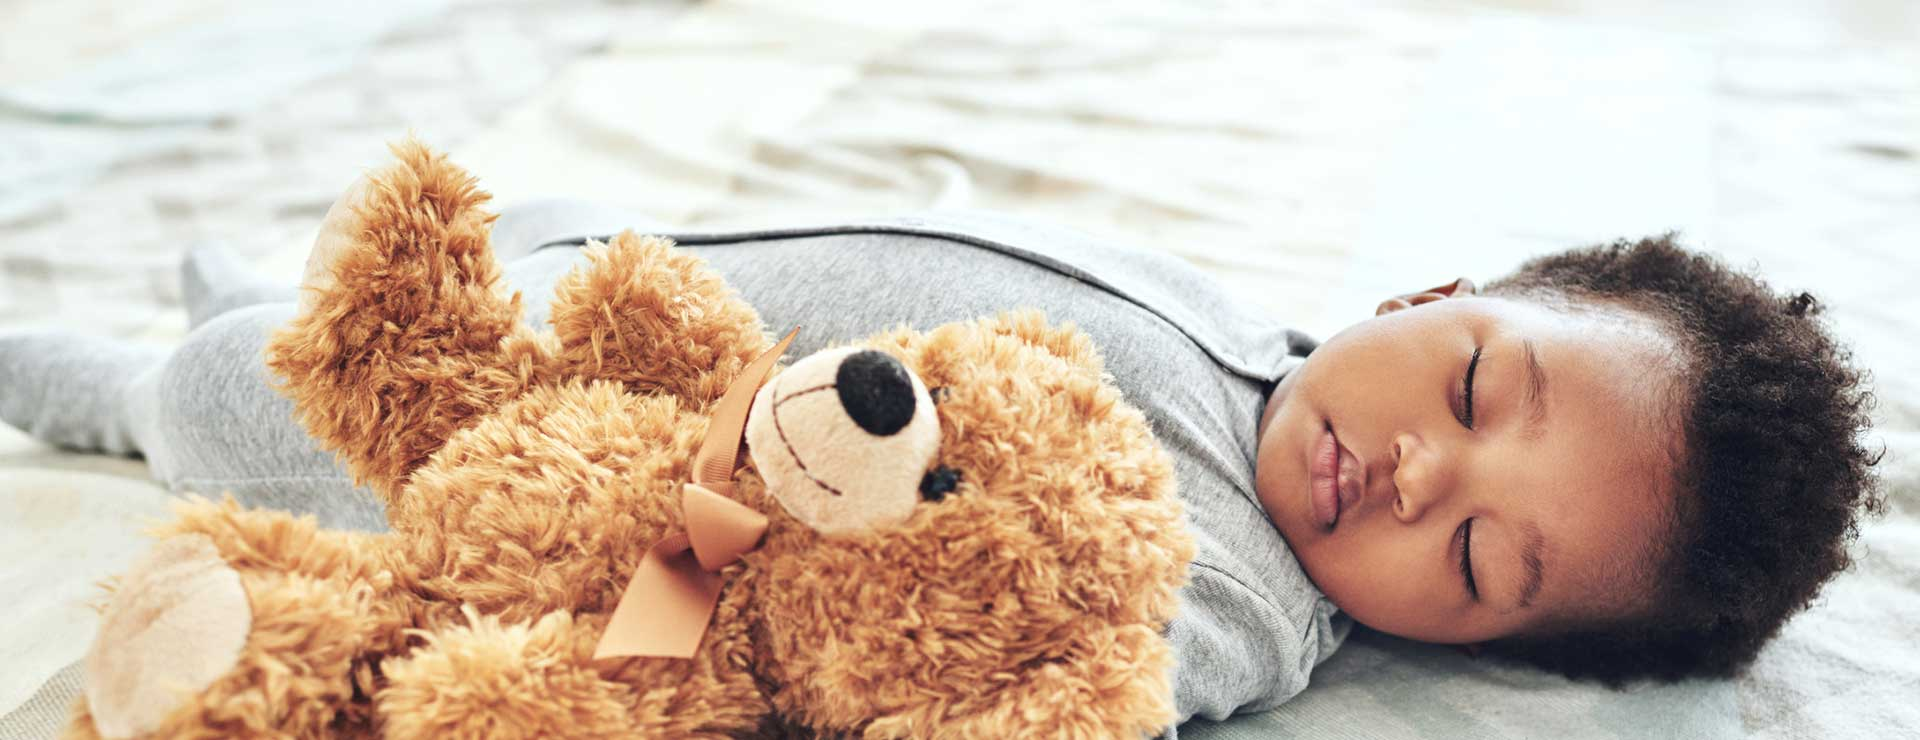 a baby sleeps in bed with teddy bear